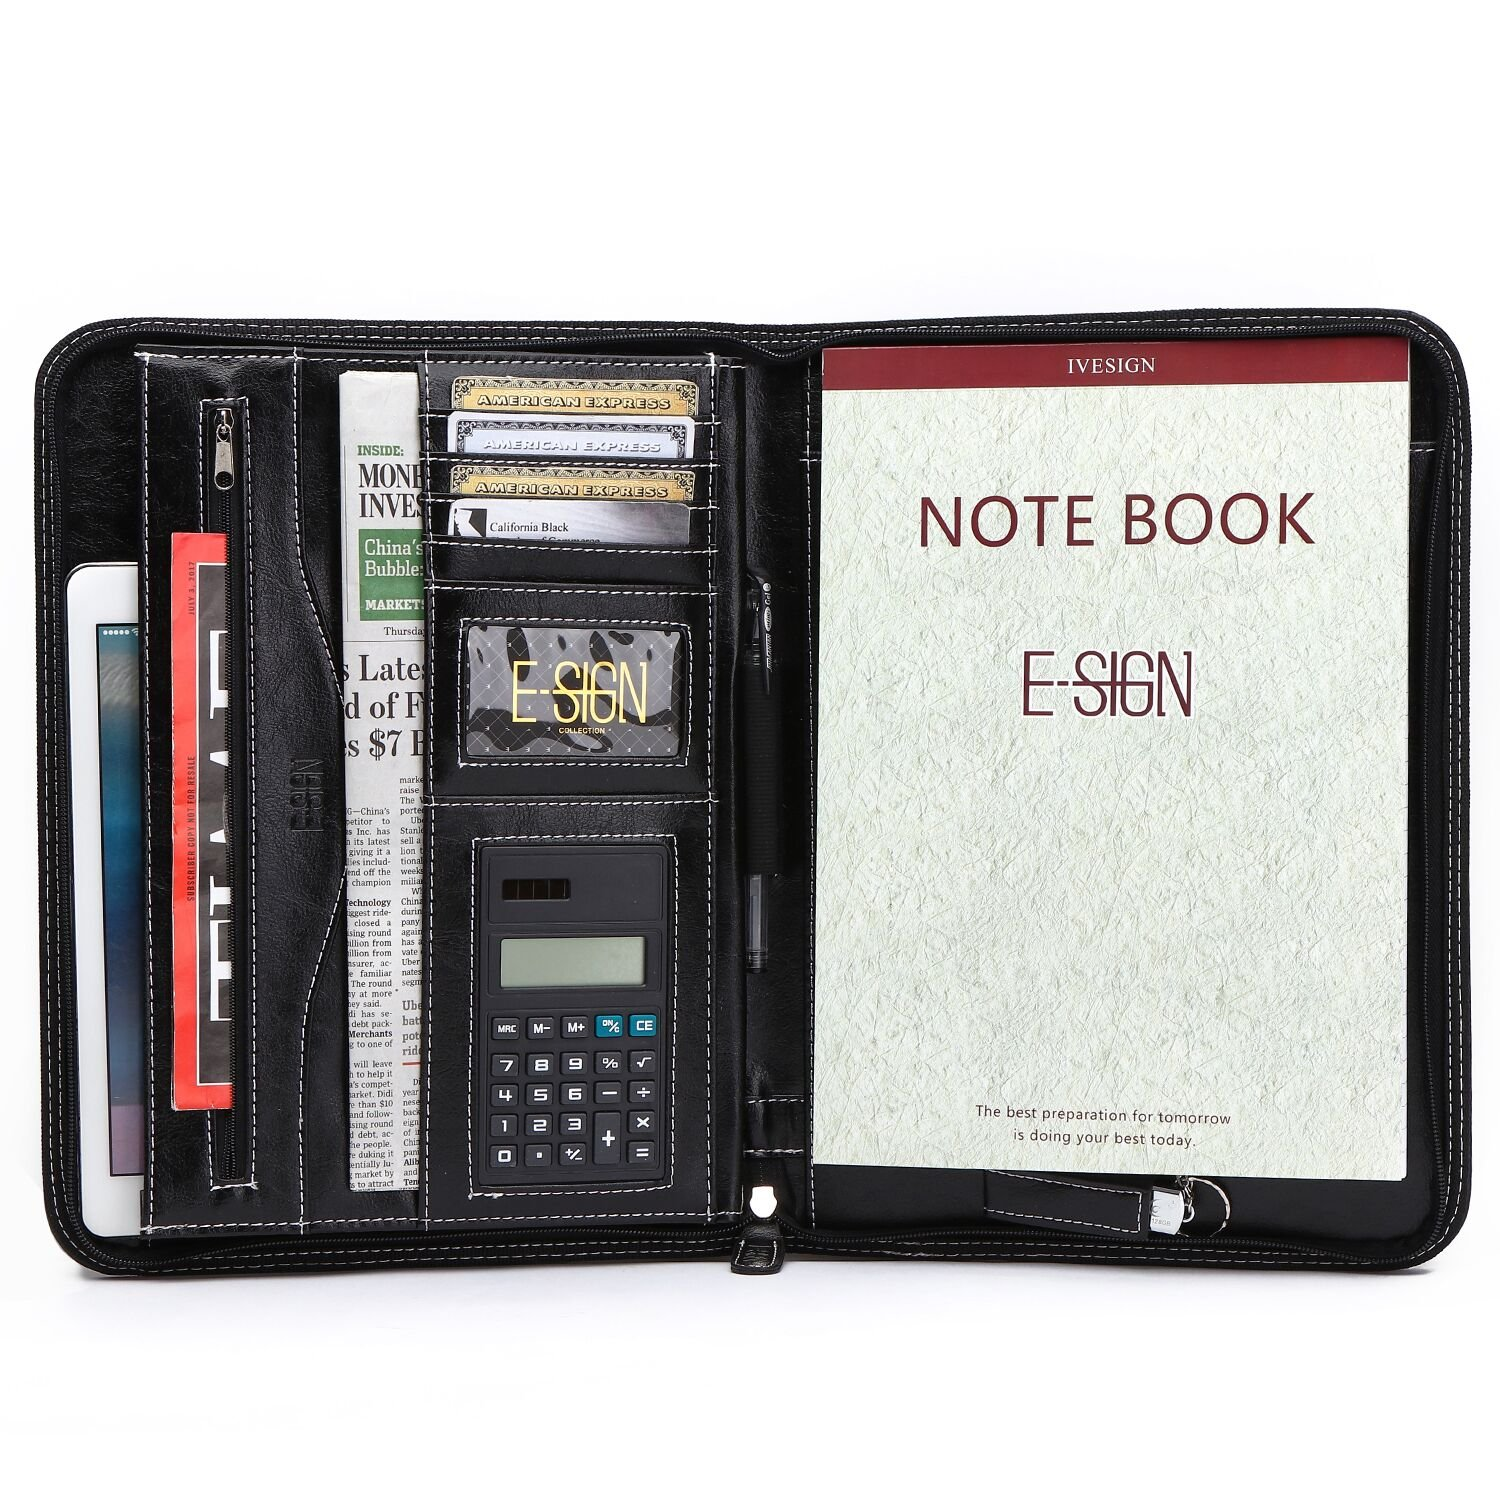 IVESIGN PU Leather Business Padfolio Portfolio with Calculator and Writing Pad, Professional Interview Padfolio with Zippered Closure, Interior 10.1 inch Tablet Sleeve (Black) by IVESIGN (Image #1)